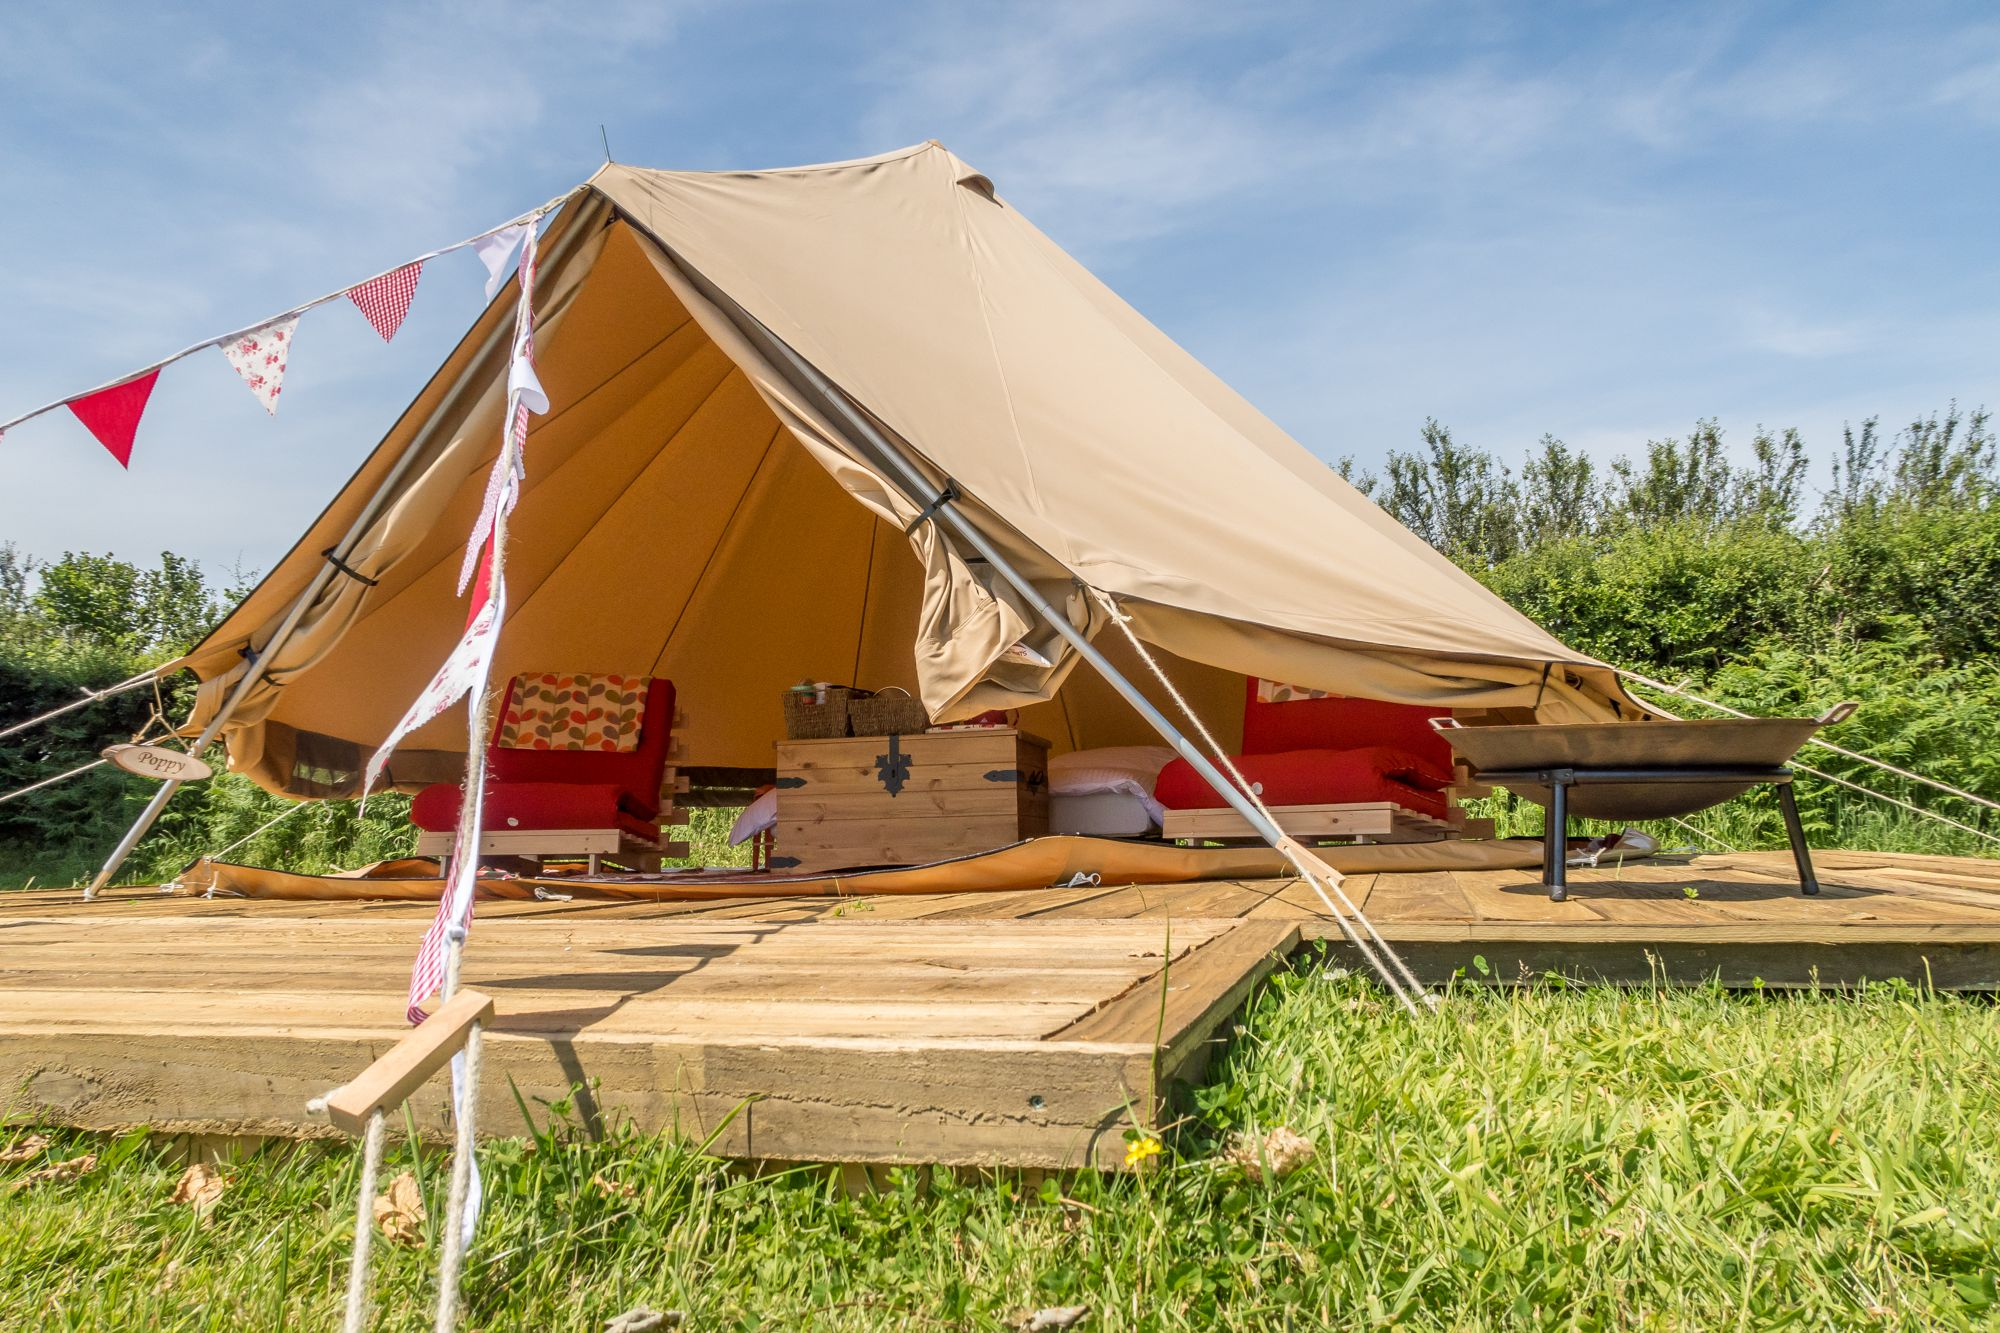 Campsites in Bodmin – Glampingly